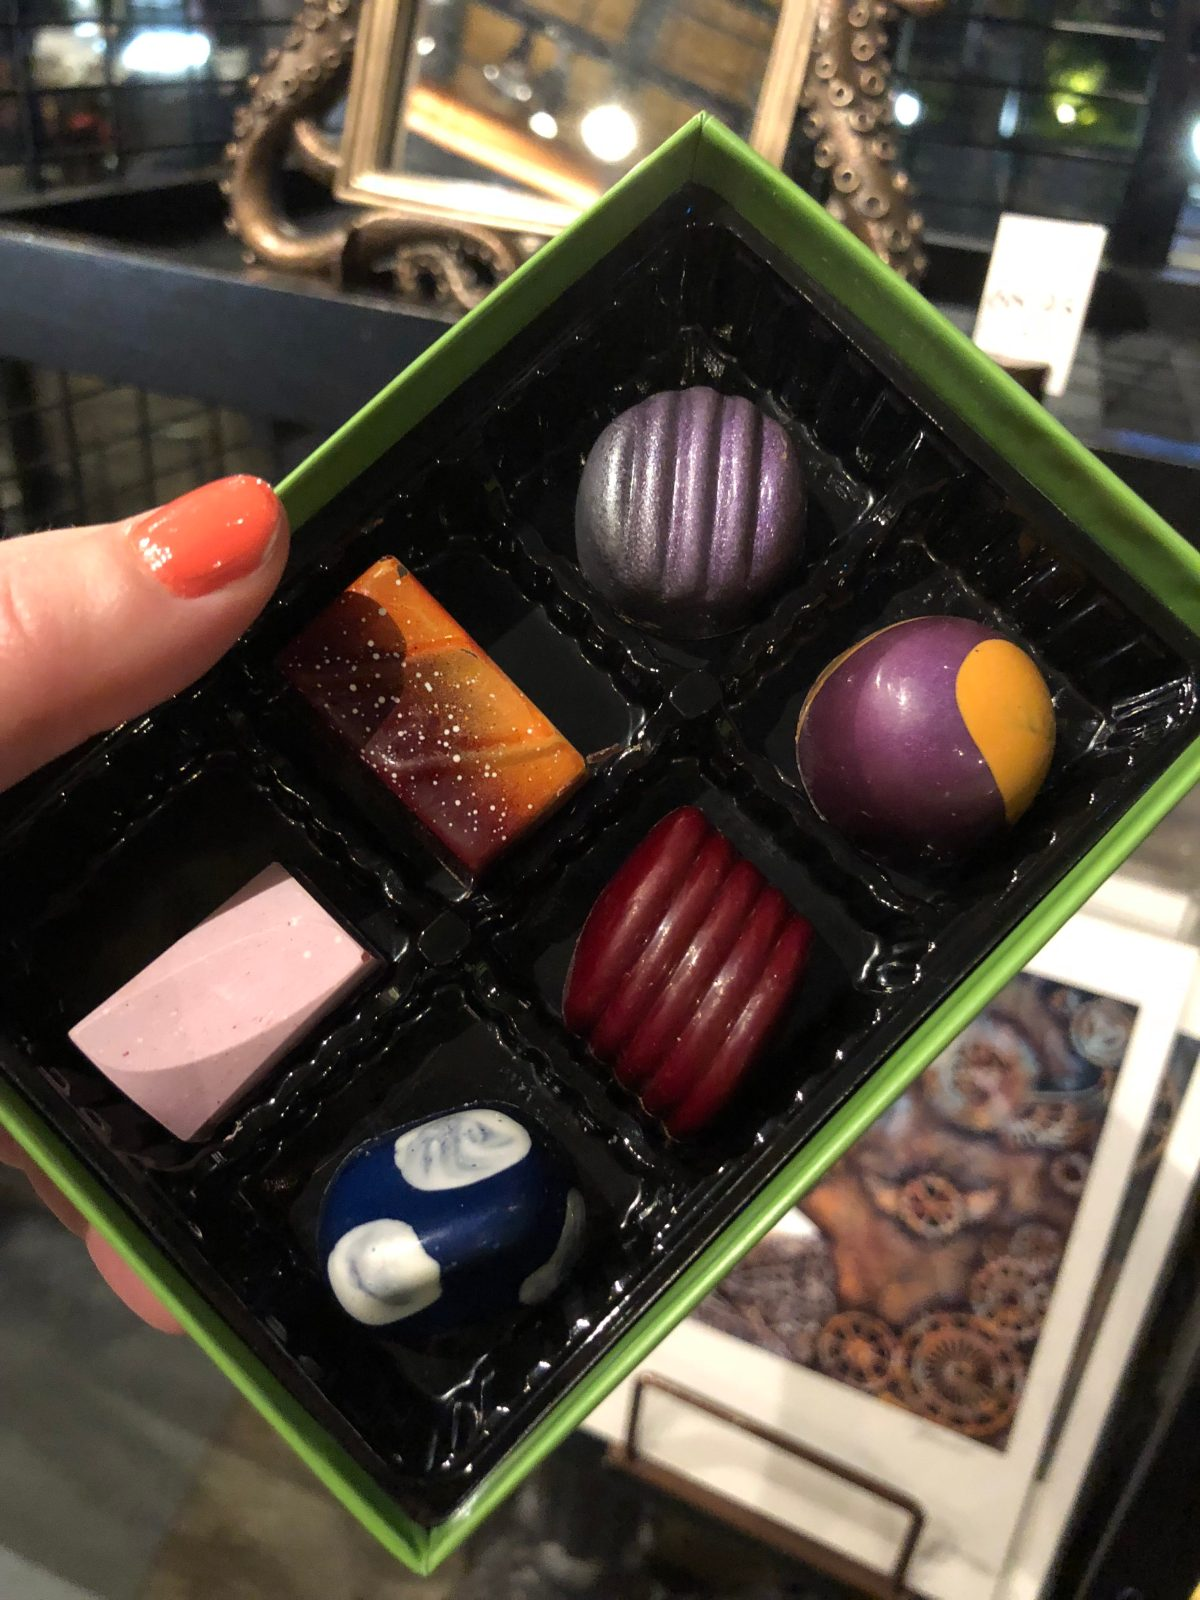 Artisan Chocolates from Toothsome Chocolate Emporium #chocolatelover #universalthemeparks #citywalk #toothsomeschocolateemporium #universalstudiosorlando